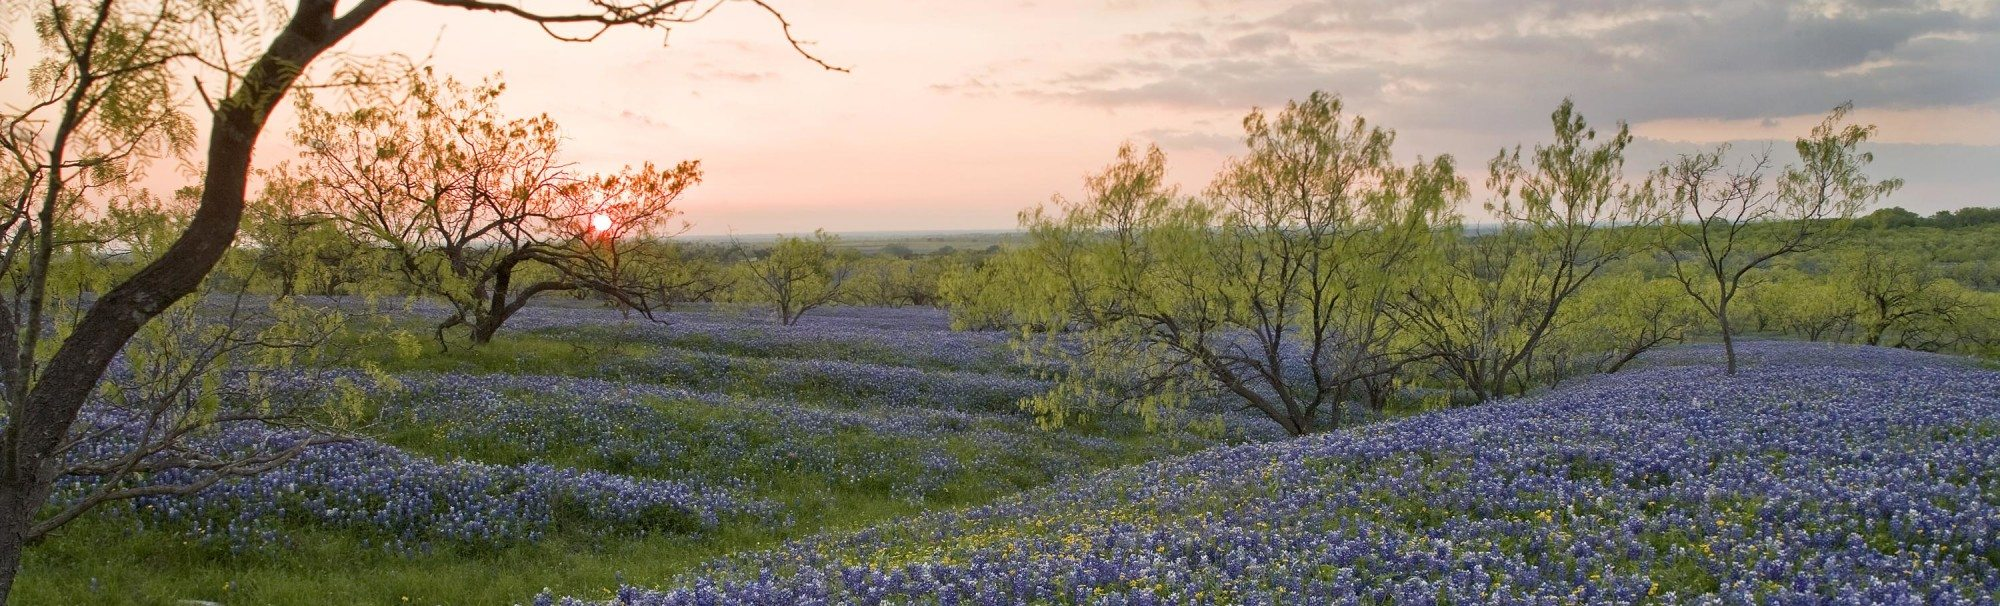 Texas wildflower